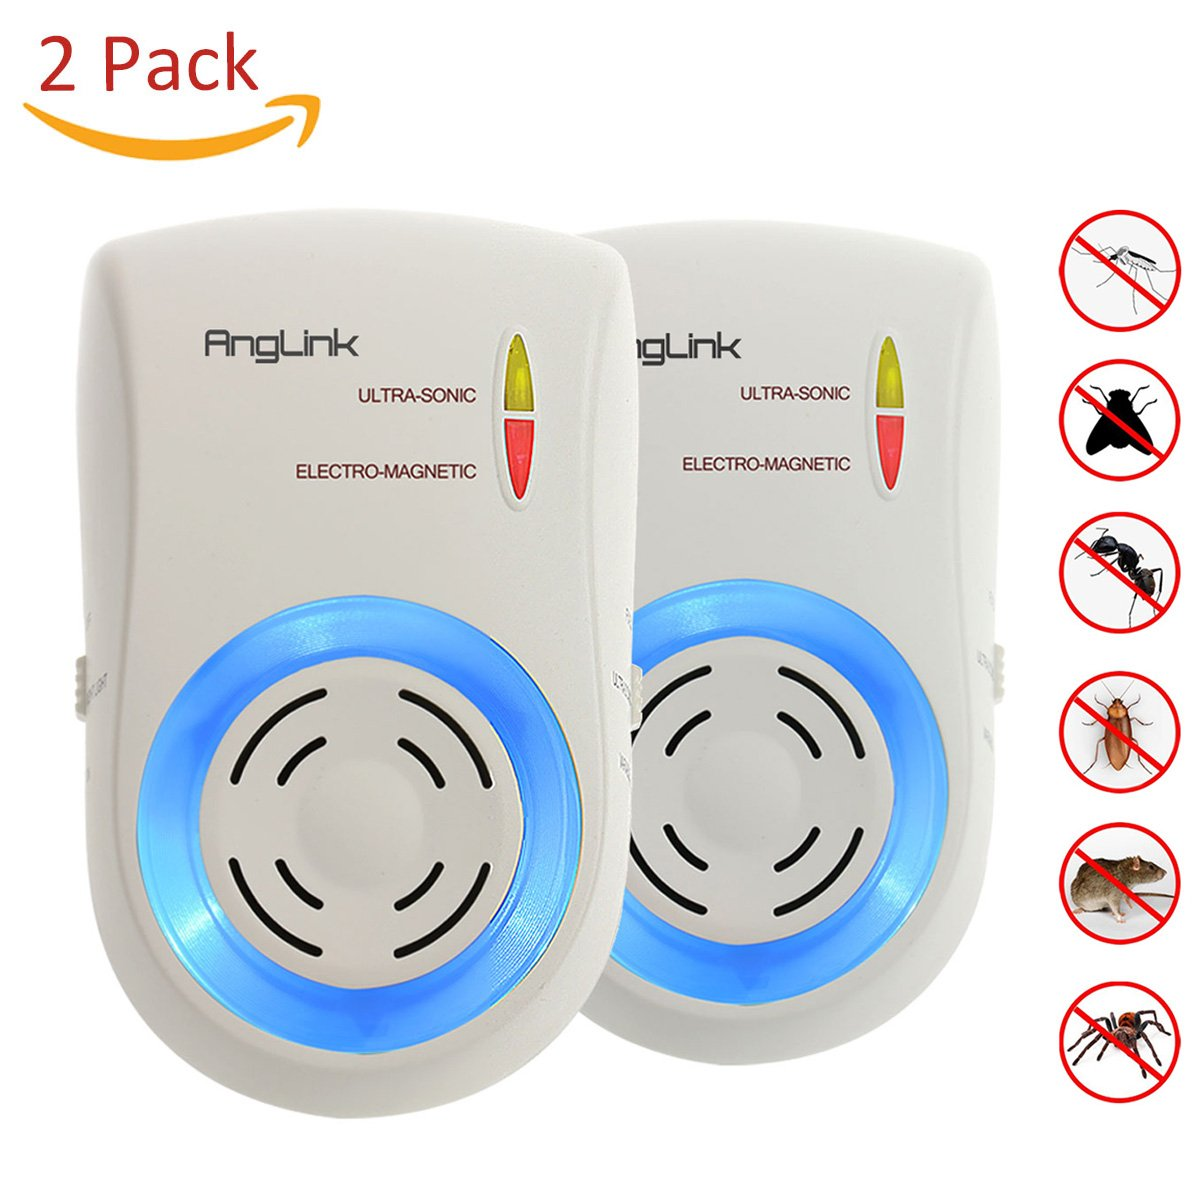 AngLink 2 x Ultrasonic Pest Repeller Electromagnetic Waves Pest Control Ultrasonic Plug in Pest Repellent Device for Indoor Rodents Mouse Mice Cockroach Flies Roaches Ants Spiders Fleas